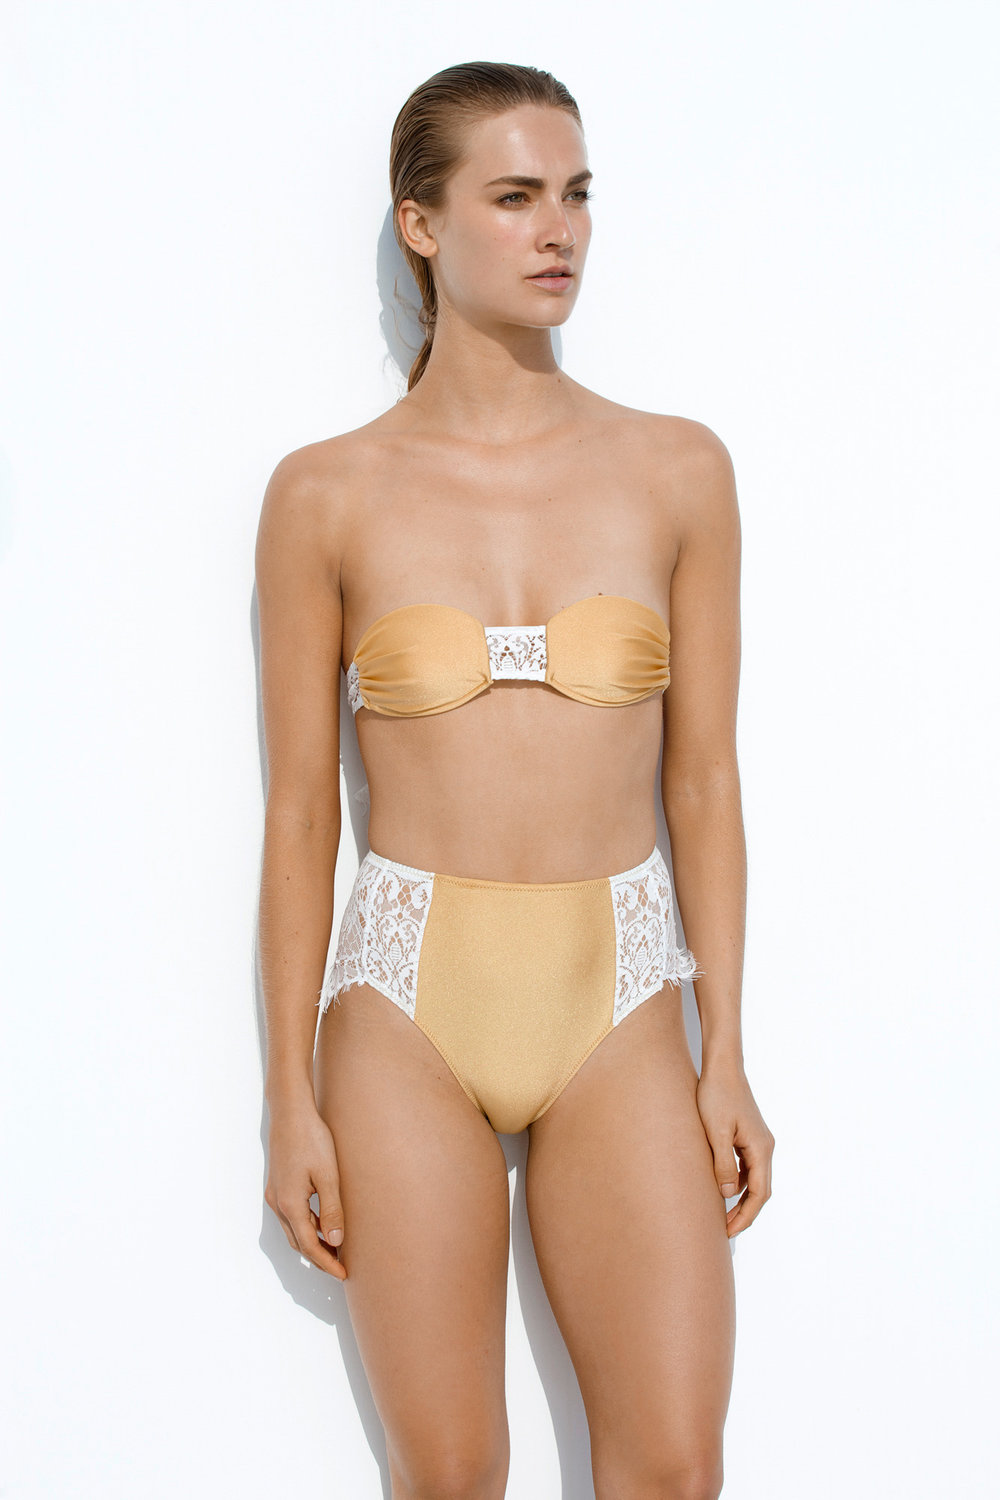 Cap-pas-Cap Gold High waisted high rise above the hip cut and bandeau with lace cut a DIDA SS17.jpg